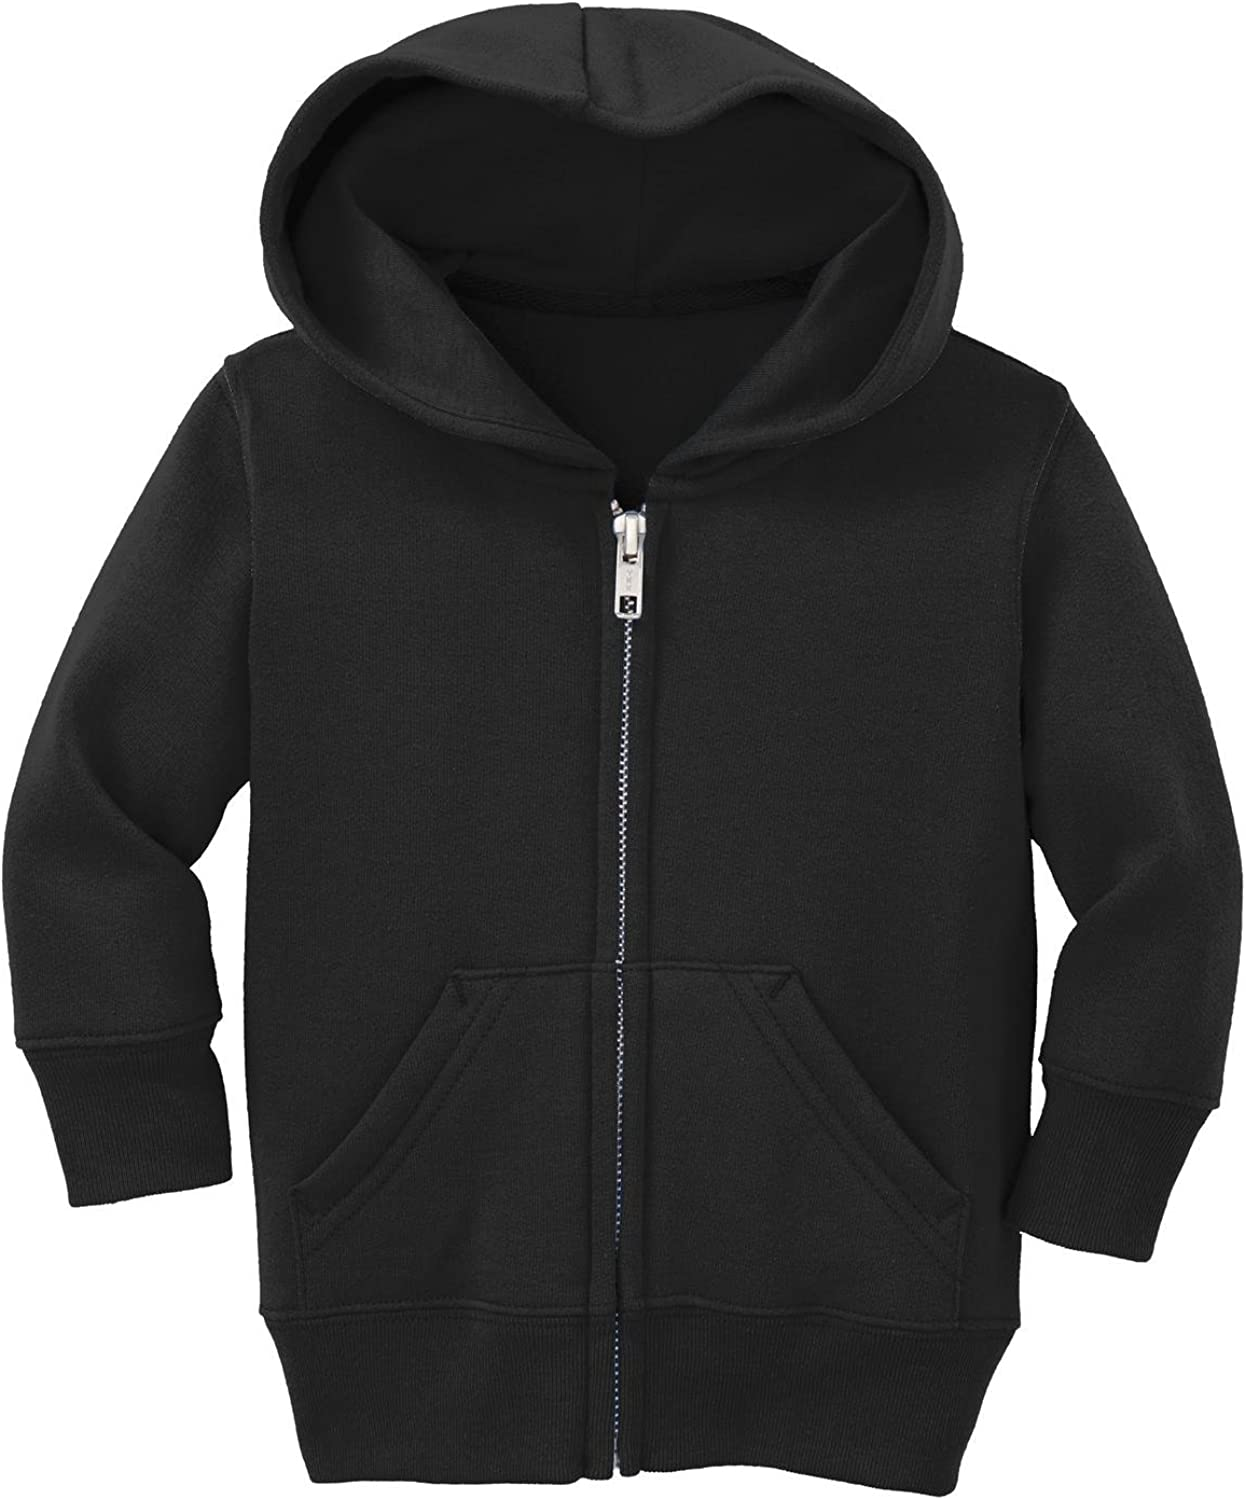 CAR78IZH Precious Cargo Infant Full-Zip Hooded Sweatshirt